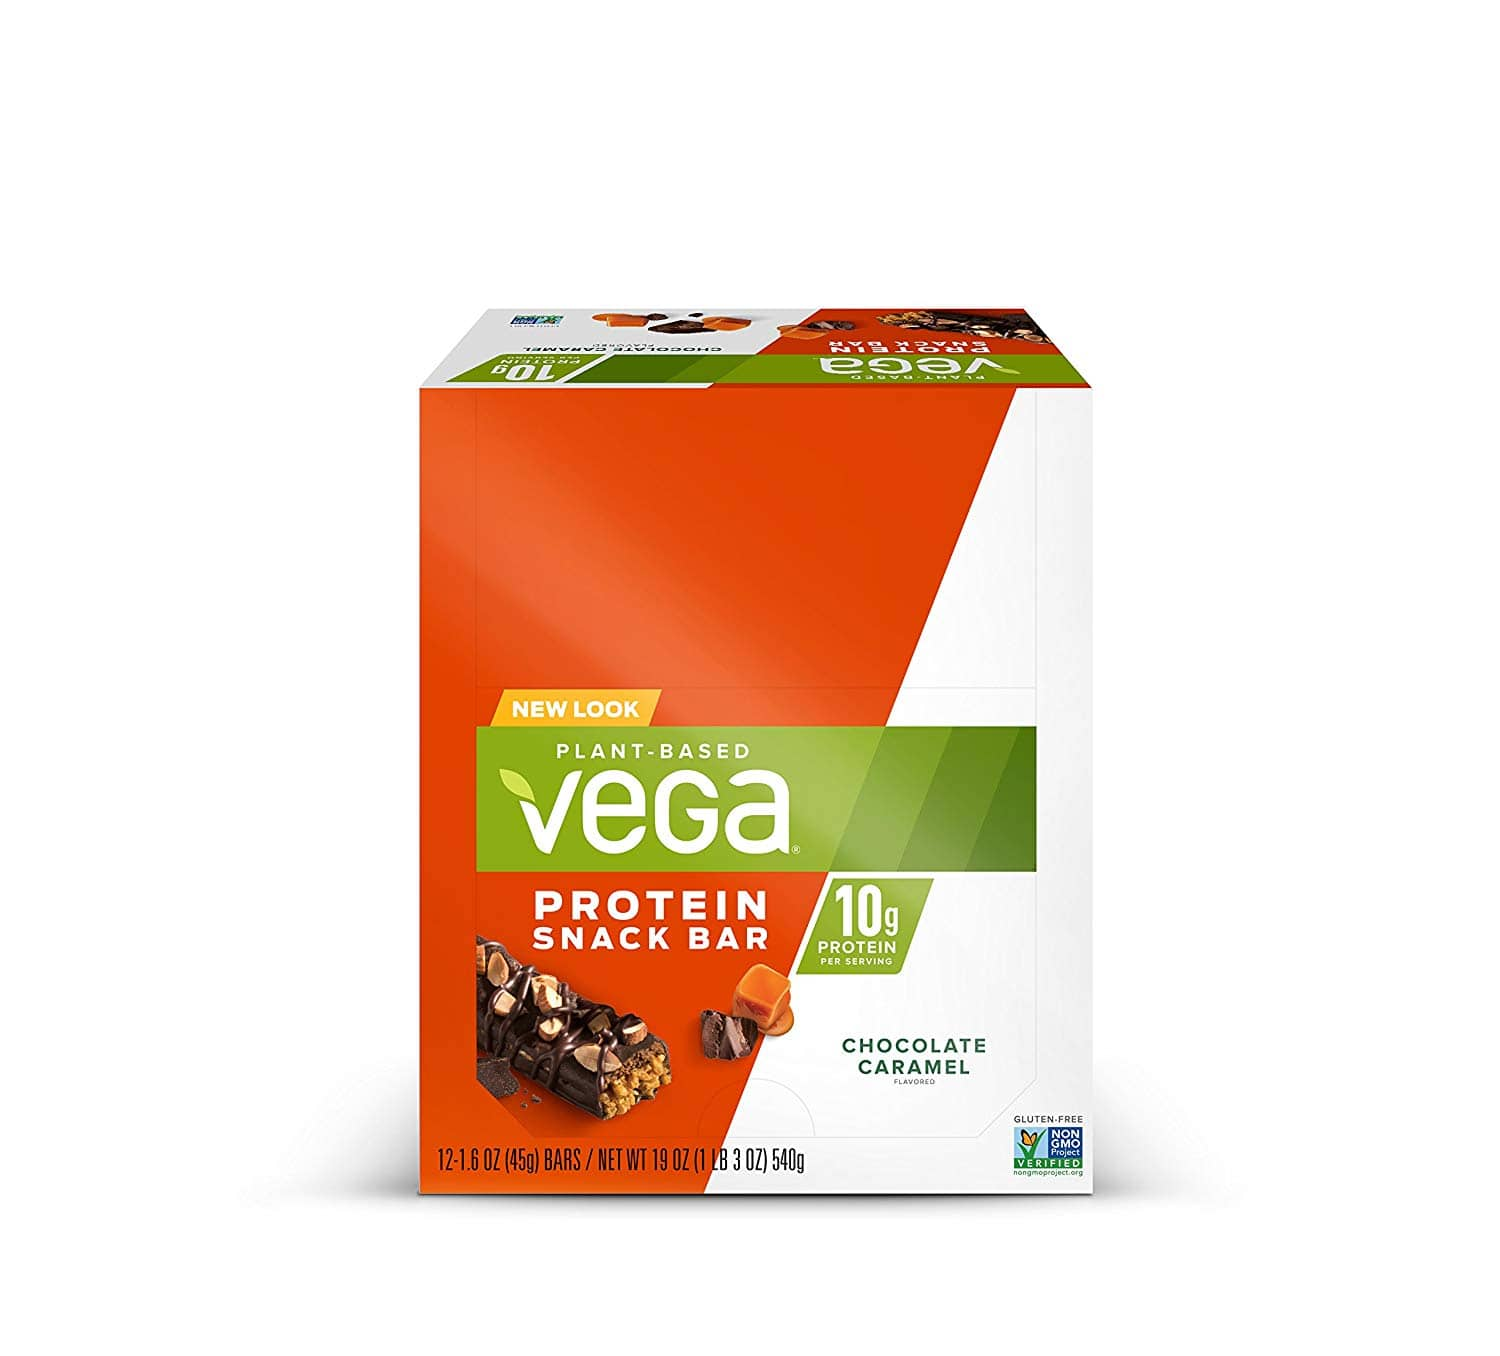 12-Ct. Vega Protein Snack Bar Chocolate Caramel or Blueberry Oat, Plant Based Vegan Protein Bars for $13.13 with Coupon and S&S